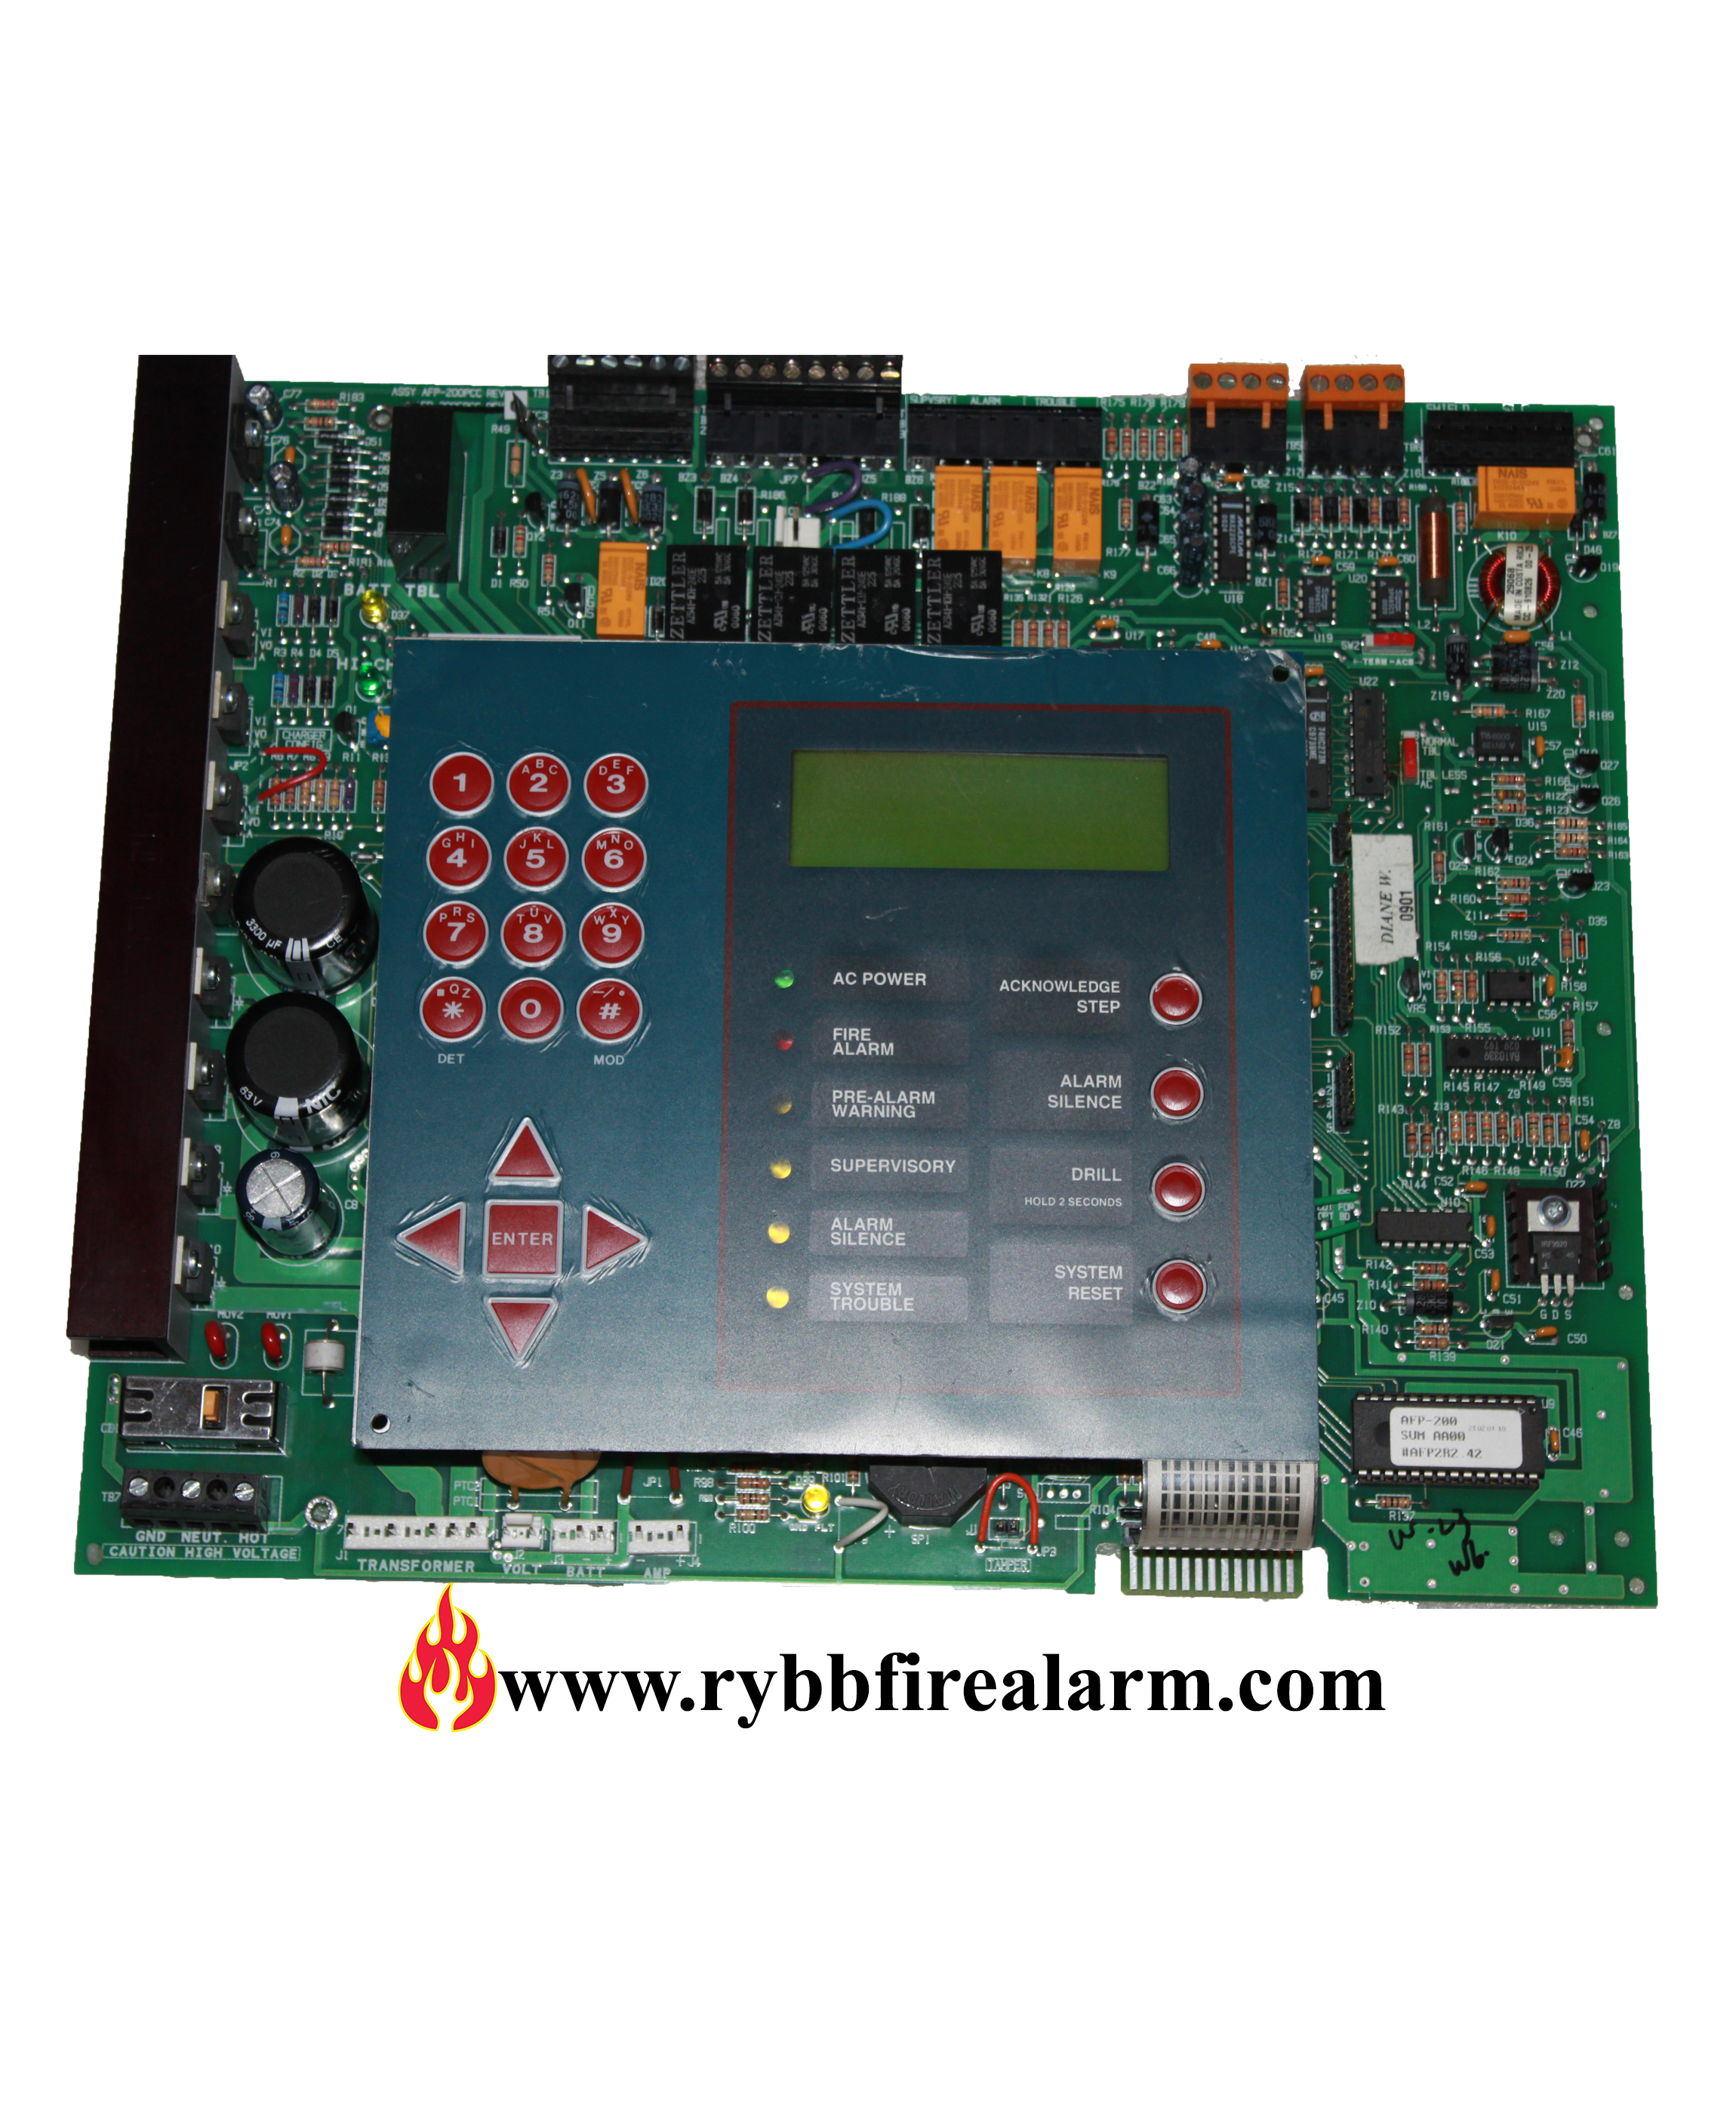 notifier afp 200 fire alarm control panel replacement board rybb rh rybbfirealarm com Notifier System 5000 Operation Manual Notifier AFP 200 Manual